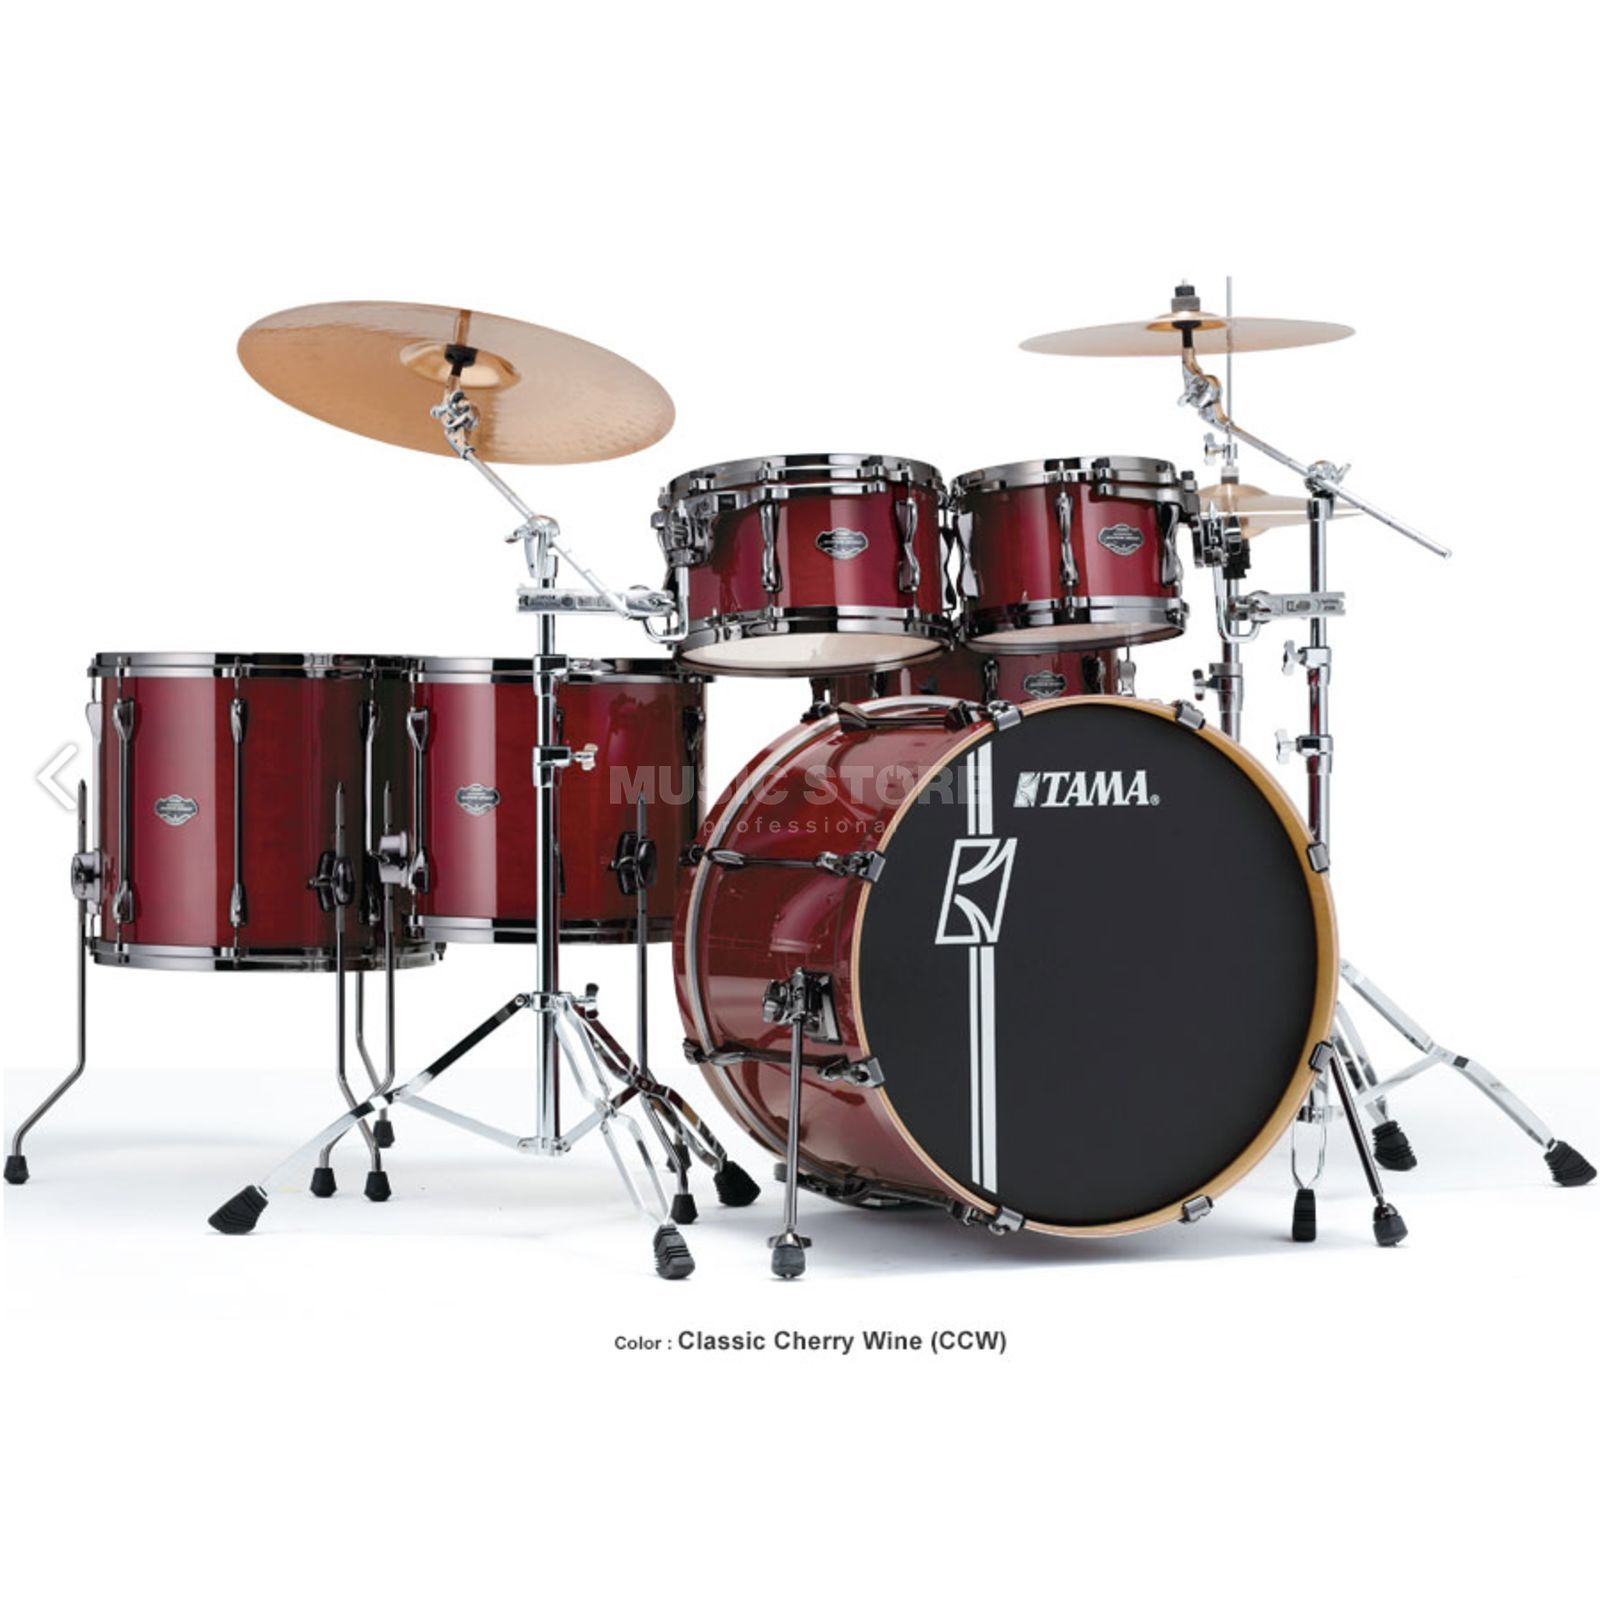 Tama Superstar HD Maple ML62HZBN, Classic Cherry Wine #CCW Produktbild